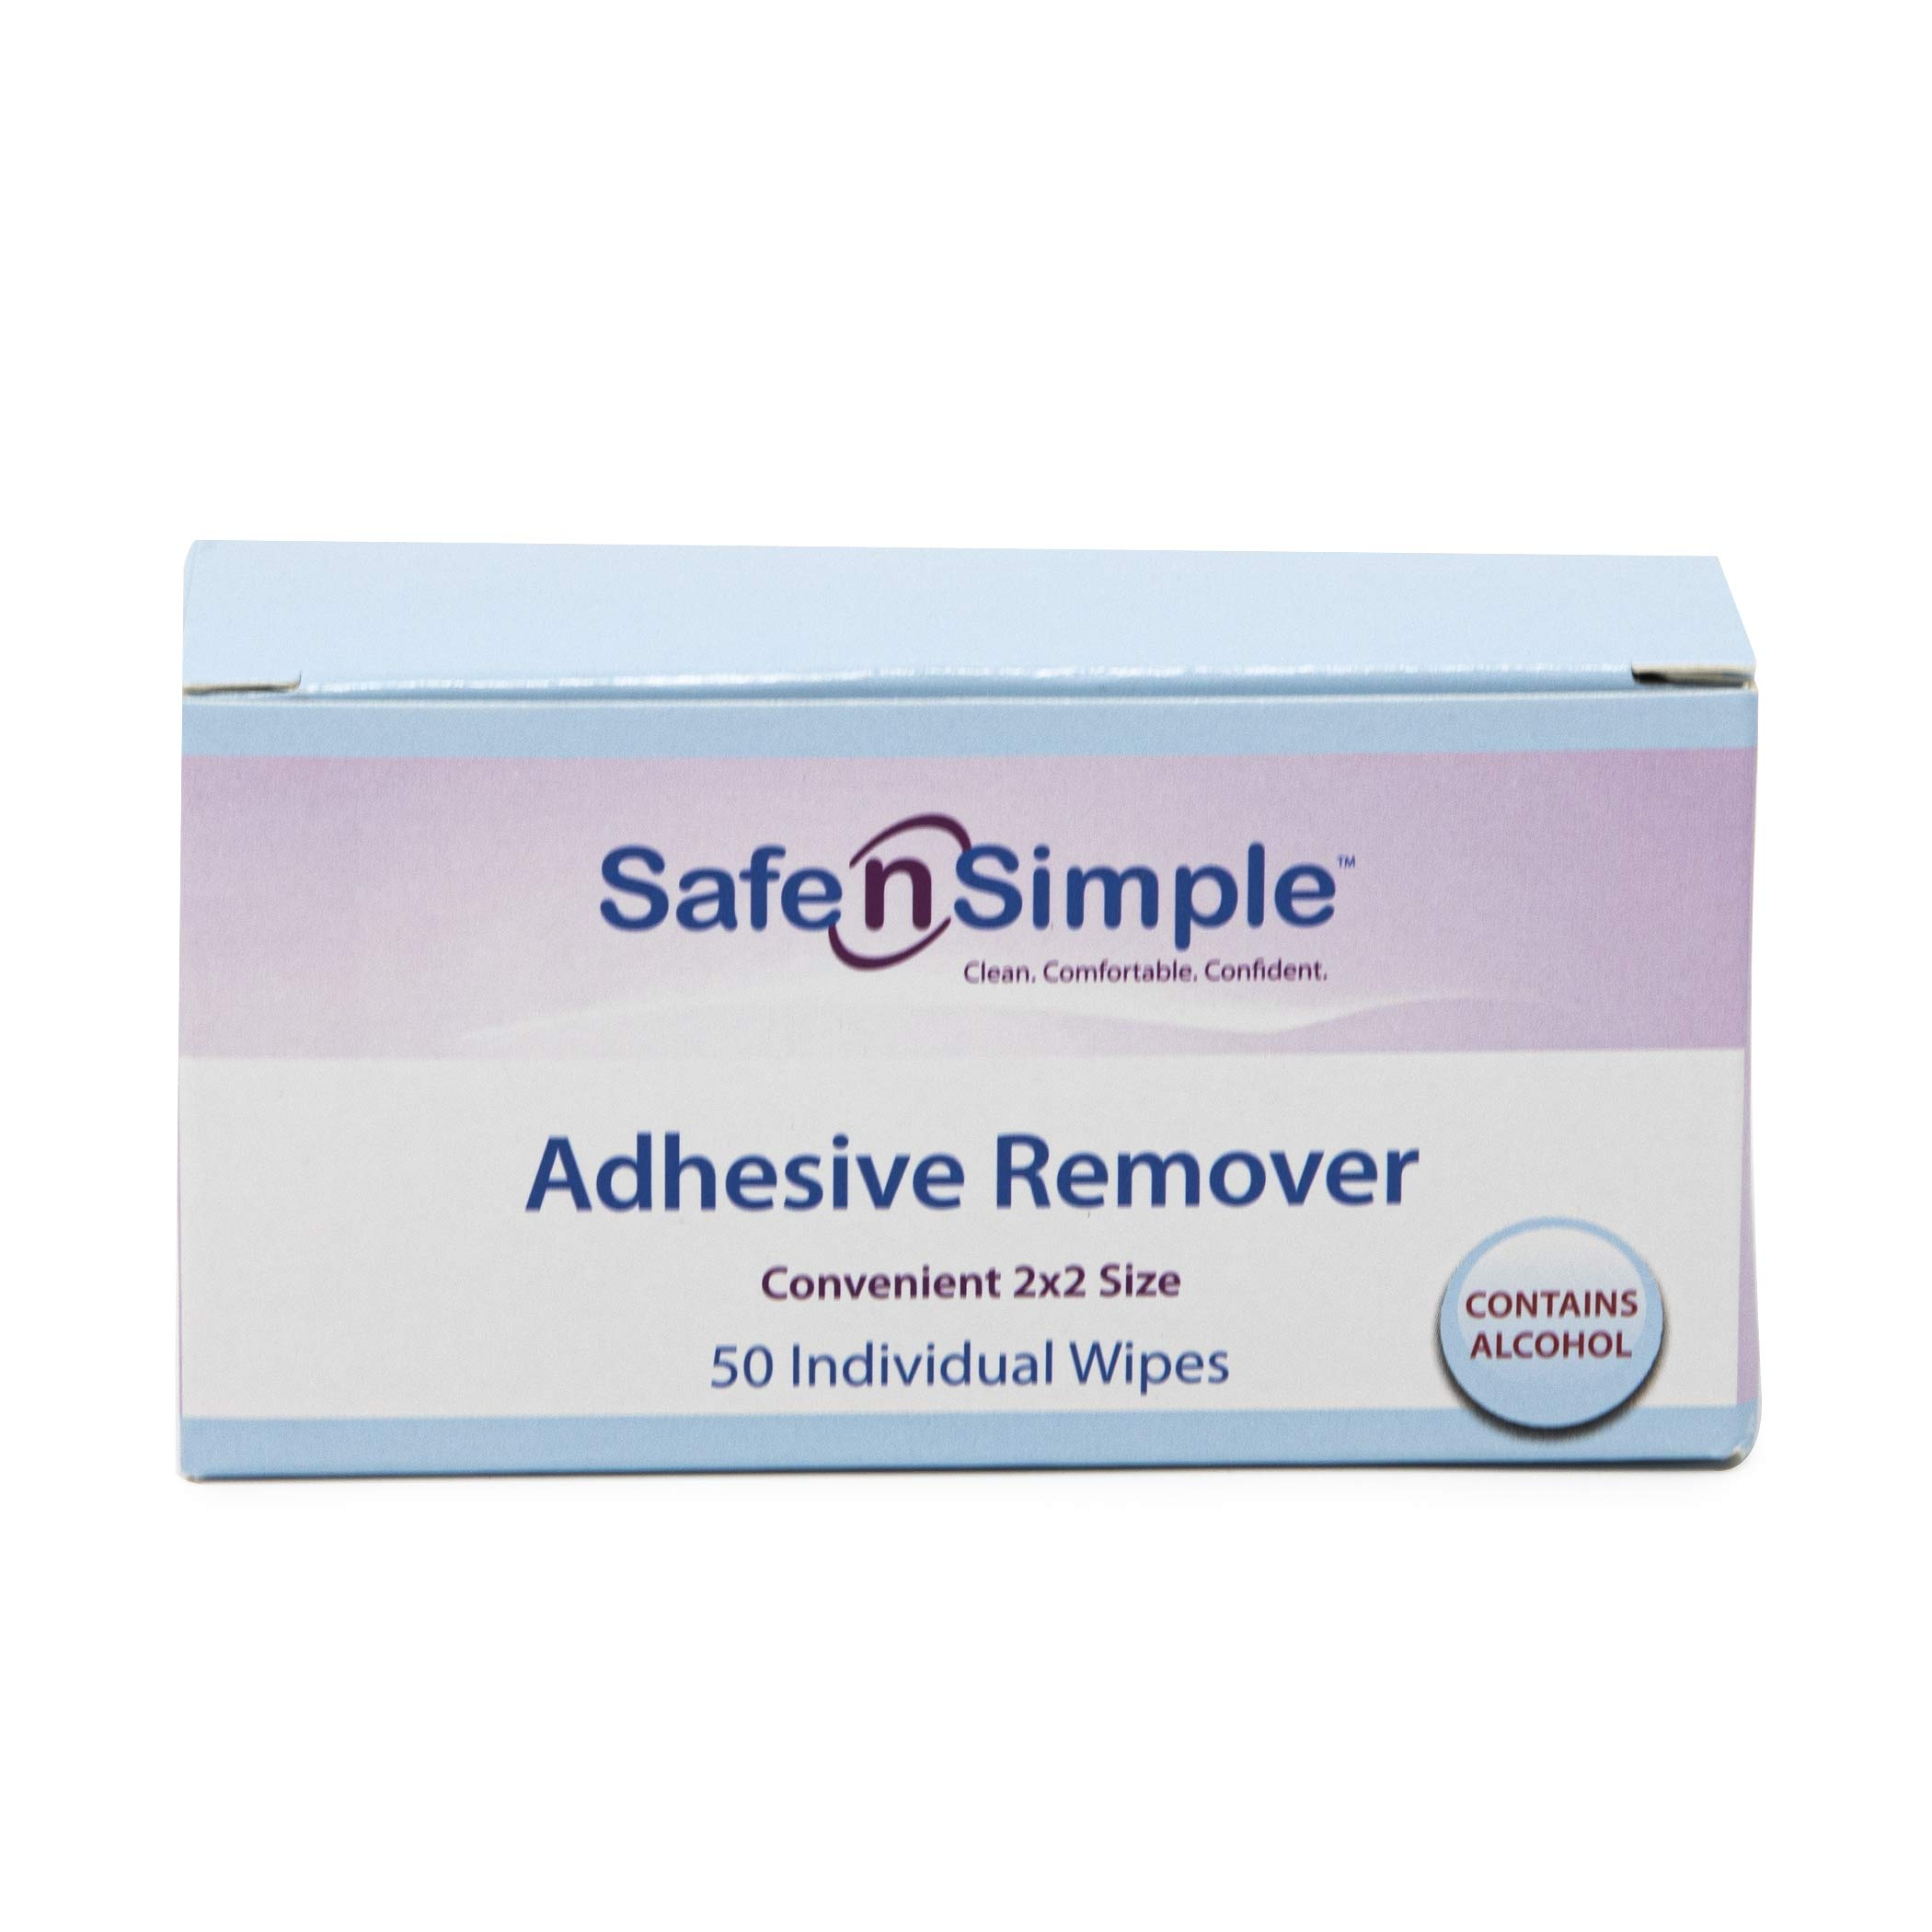 Safe n' Simple Adhesive Remover Wipes, Large, Pack of 50, Individually Wrapped Wipes